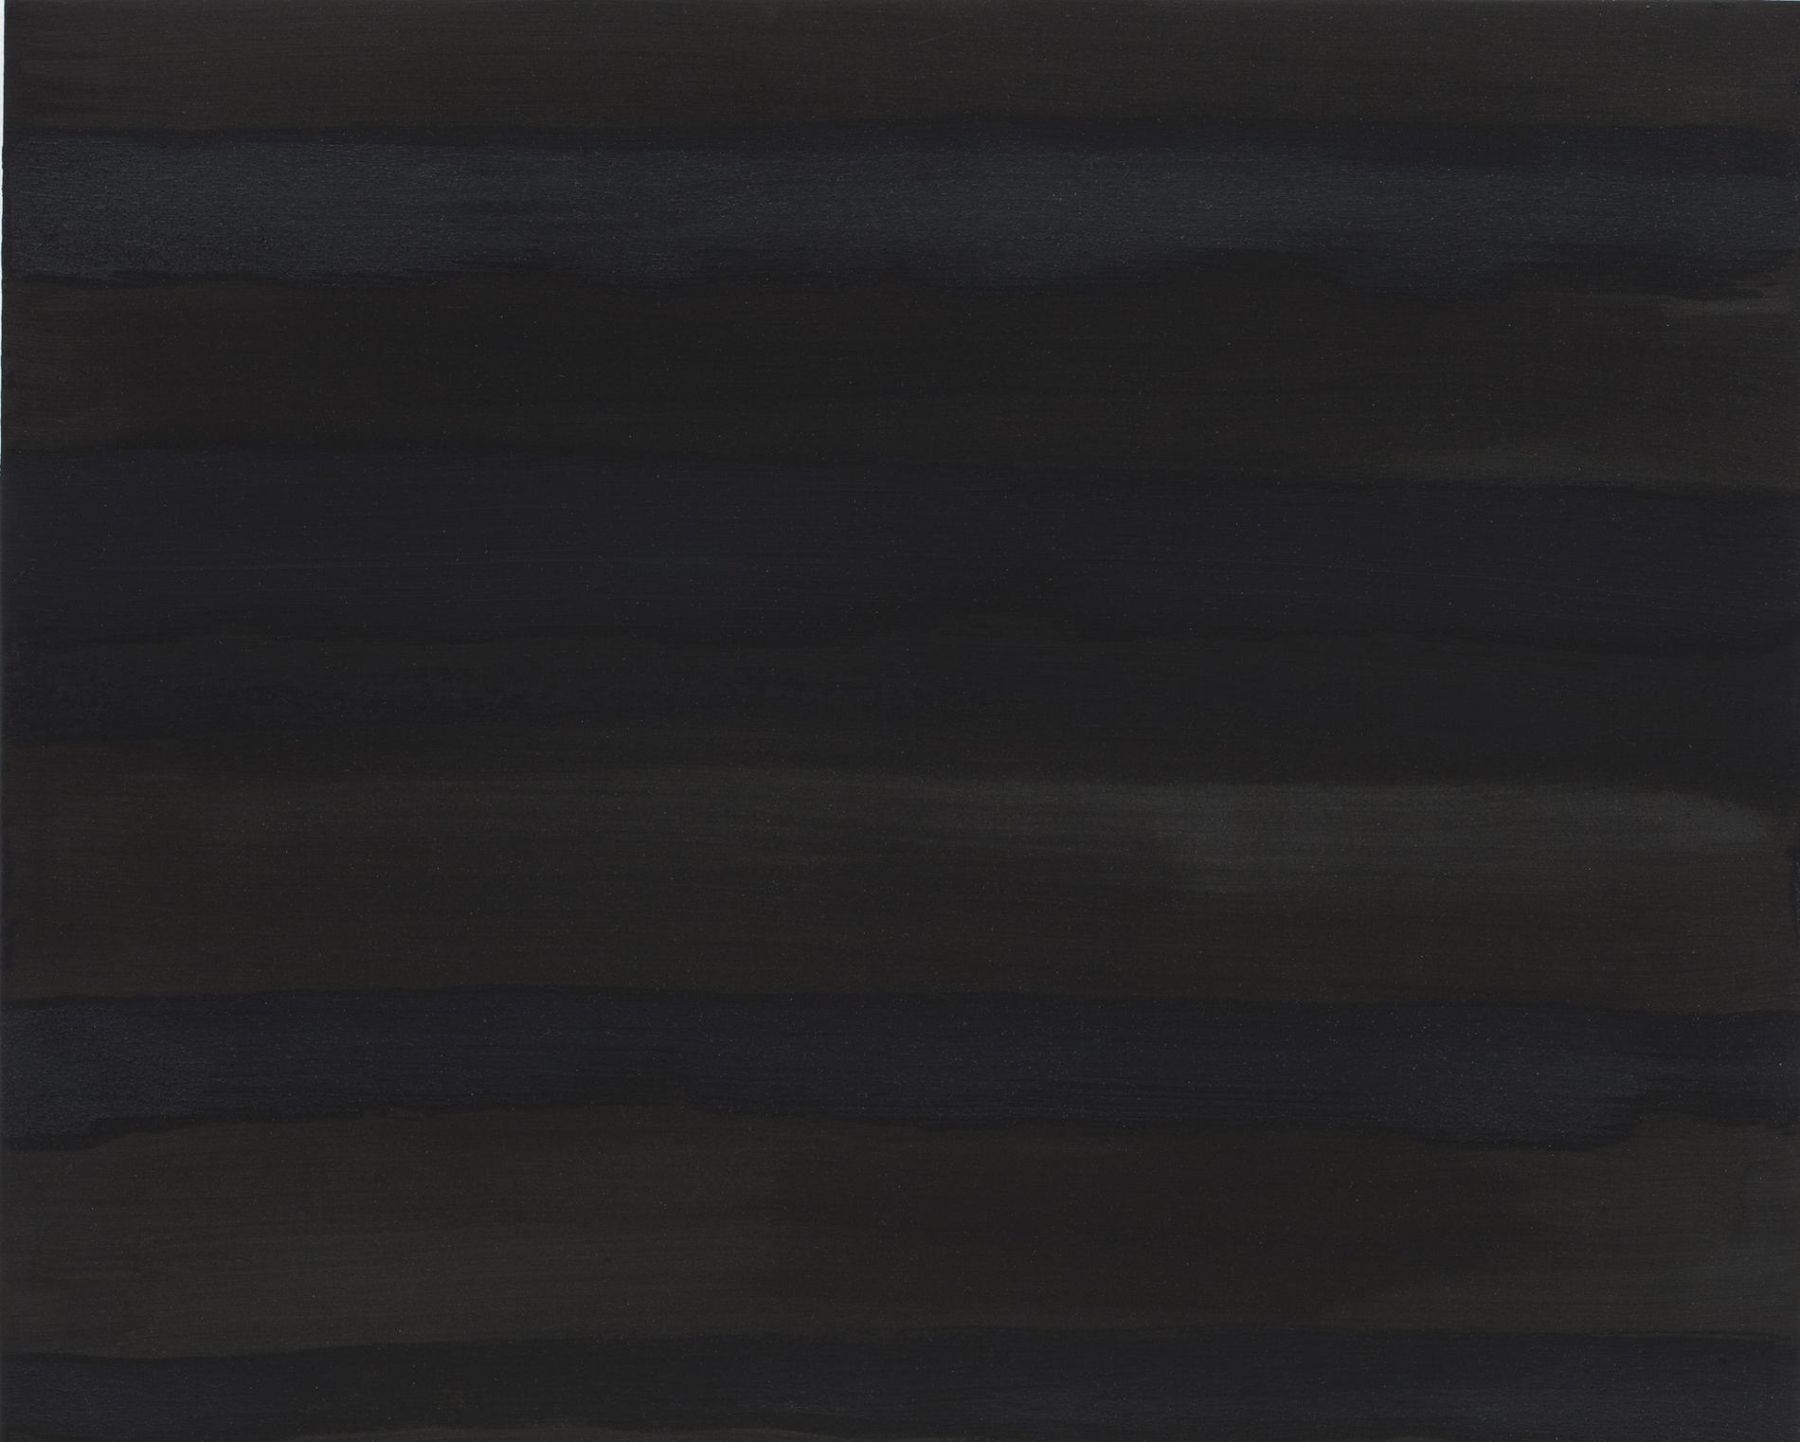 BYRON KIM Black Waves #3